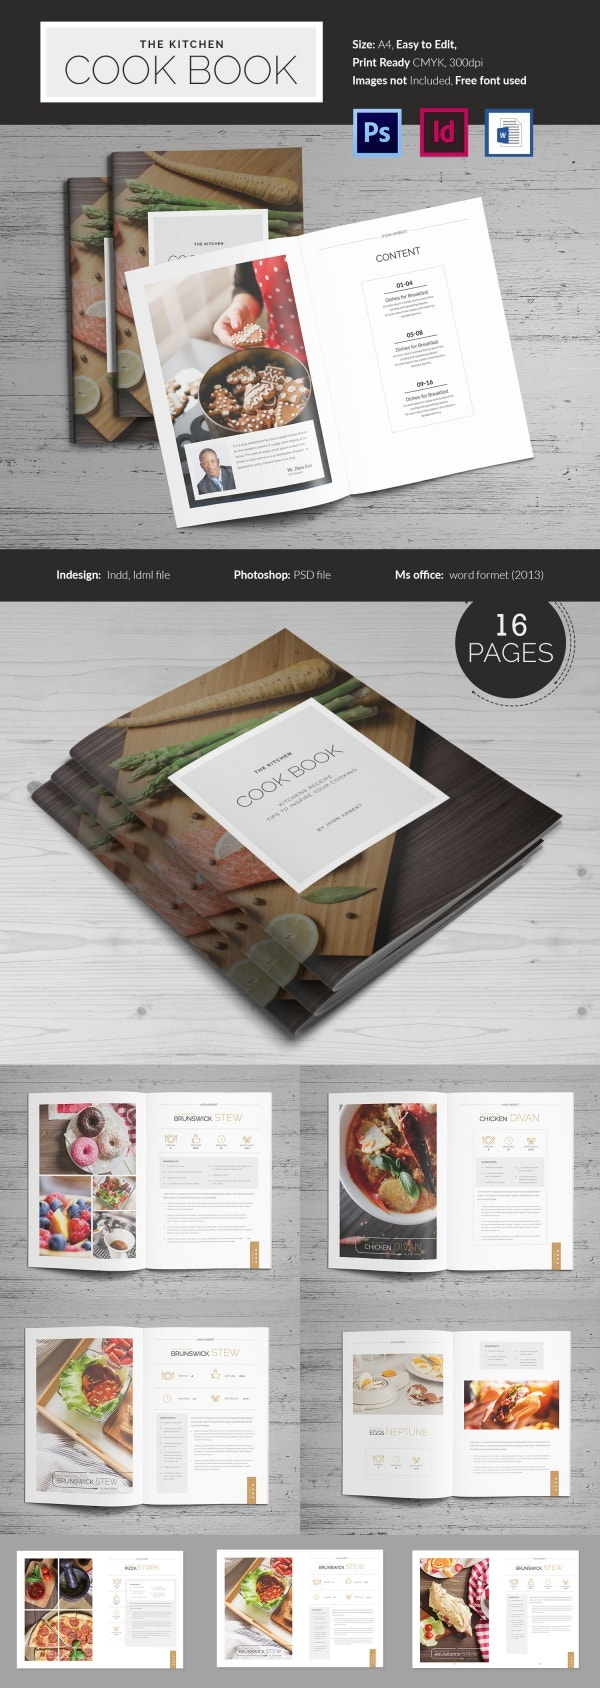 microsoft office cookbook template.html